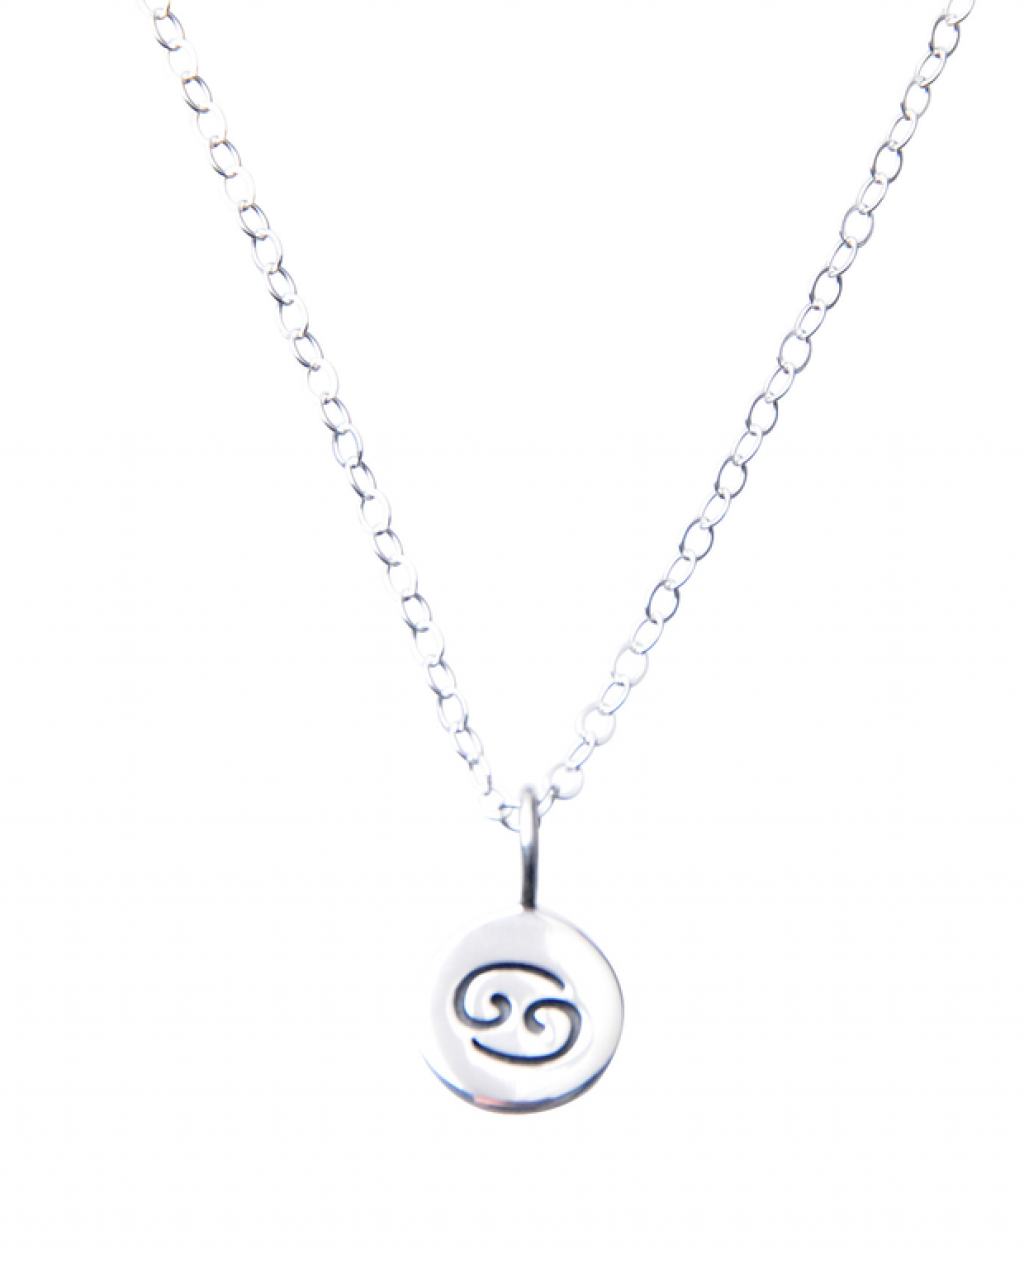 Pam Kerr Designs | Sterling Silver Zodiac Charm Necklace | 4 - Cancer